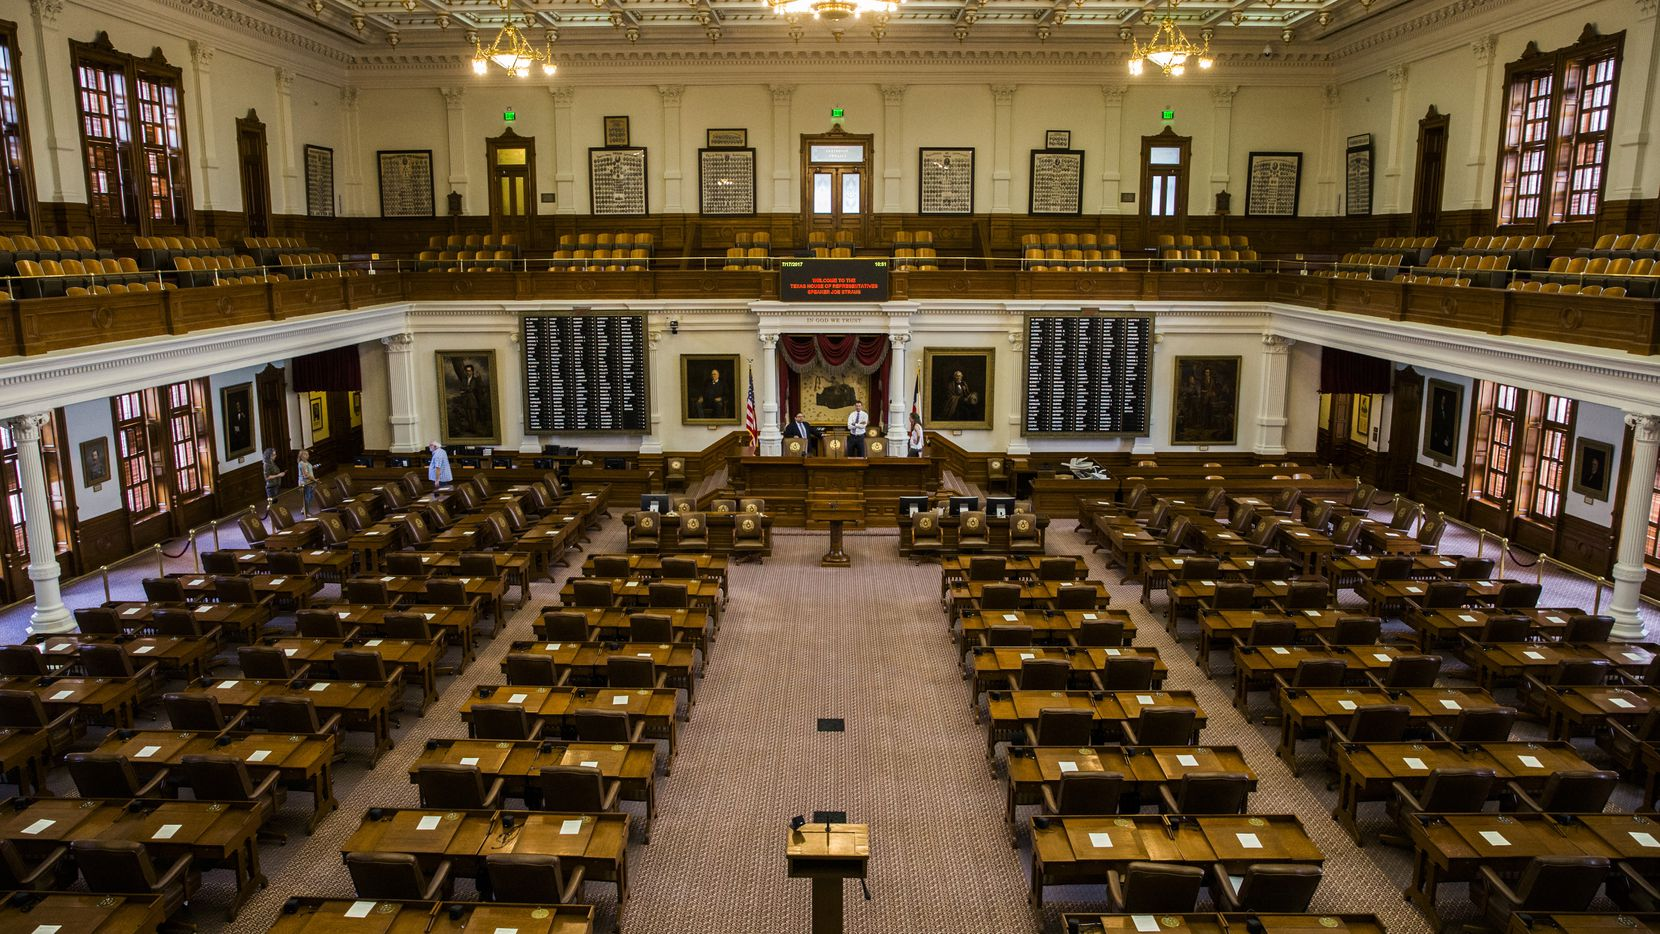 State GOP leaders have tried to quell party infighting in Texas House primaries so that Republicans this fall can retain their majority in the 150-member chamber. Mega donors Tim Dunn and Farris Wilks, though, are bankrolling challengers to two sitting state representatives with 'Rs' behind their names.